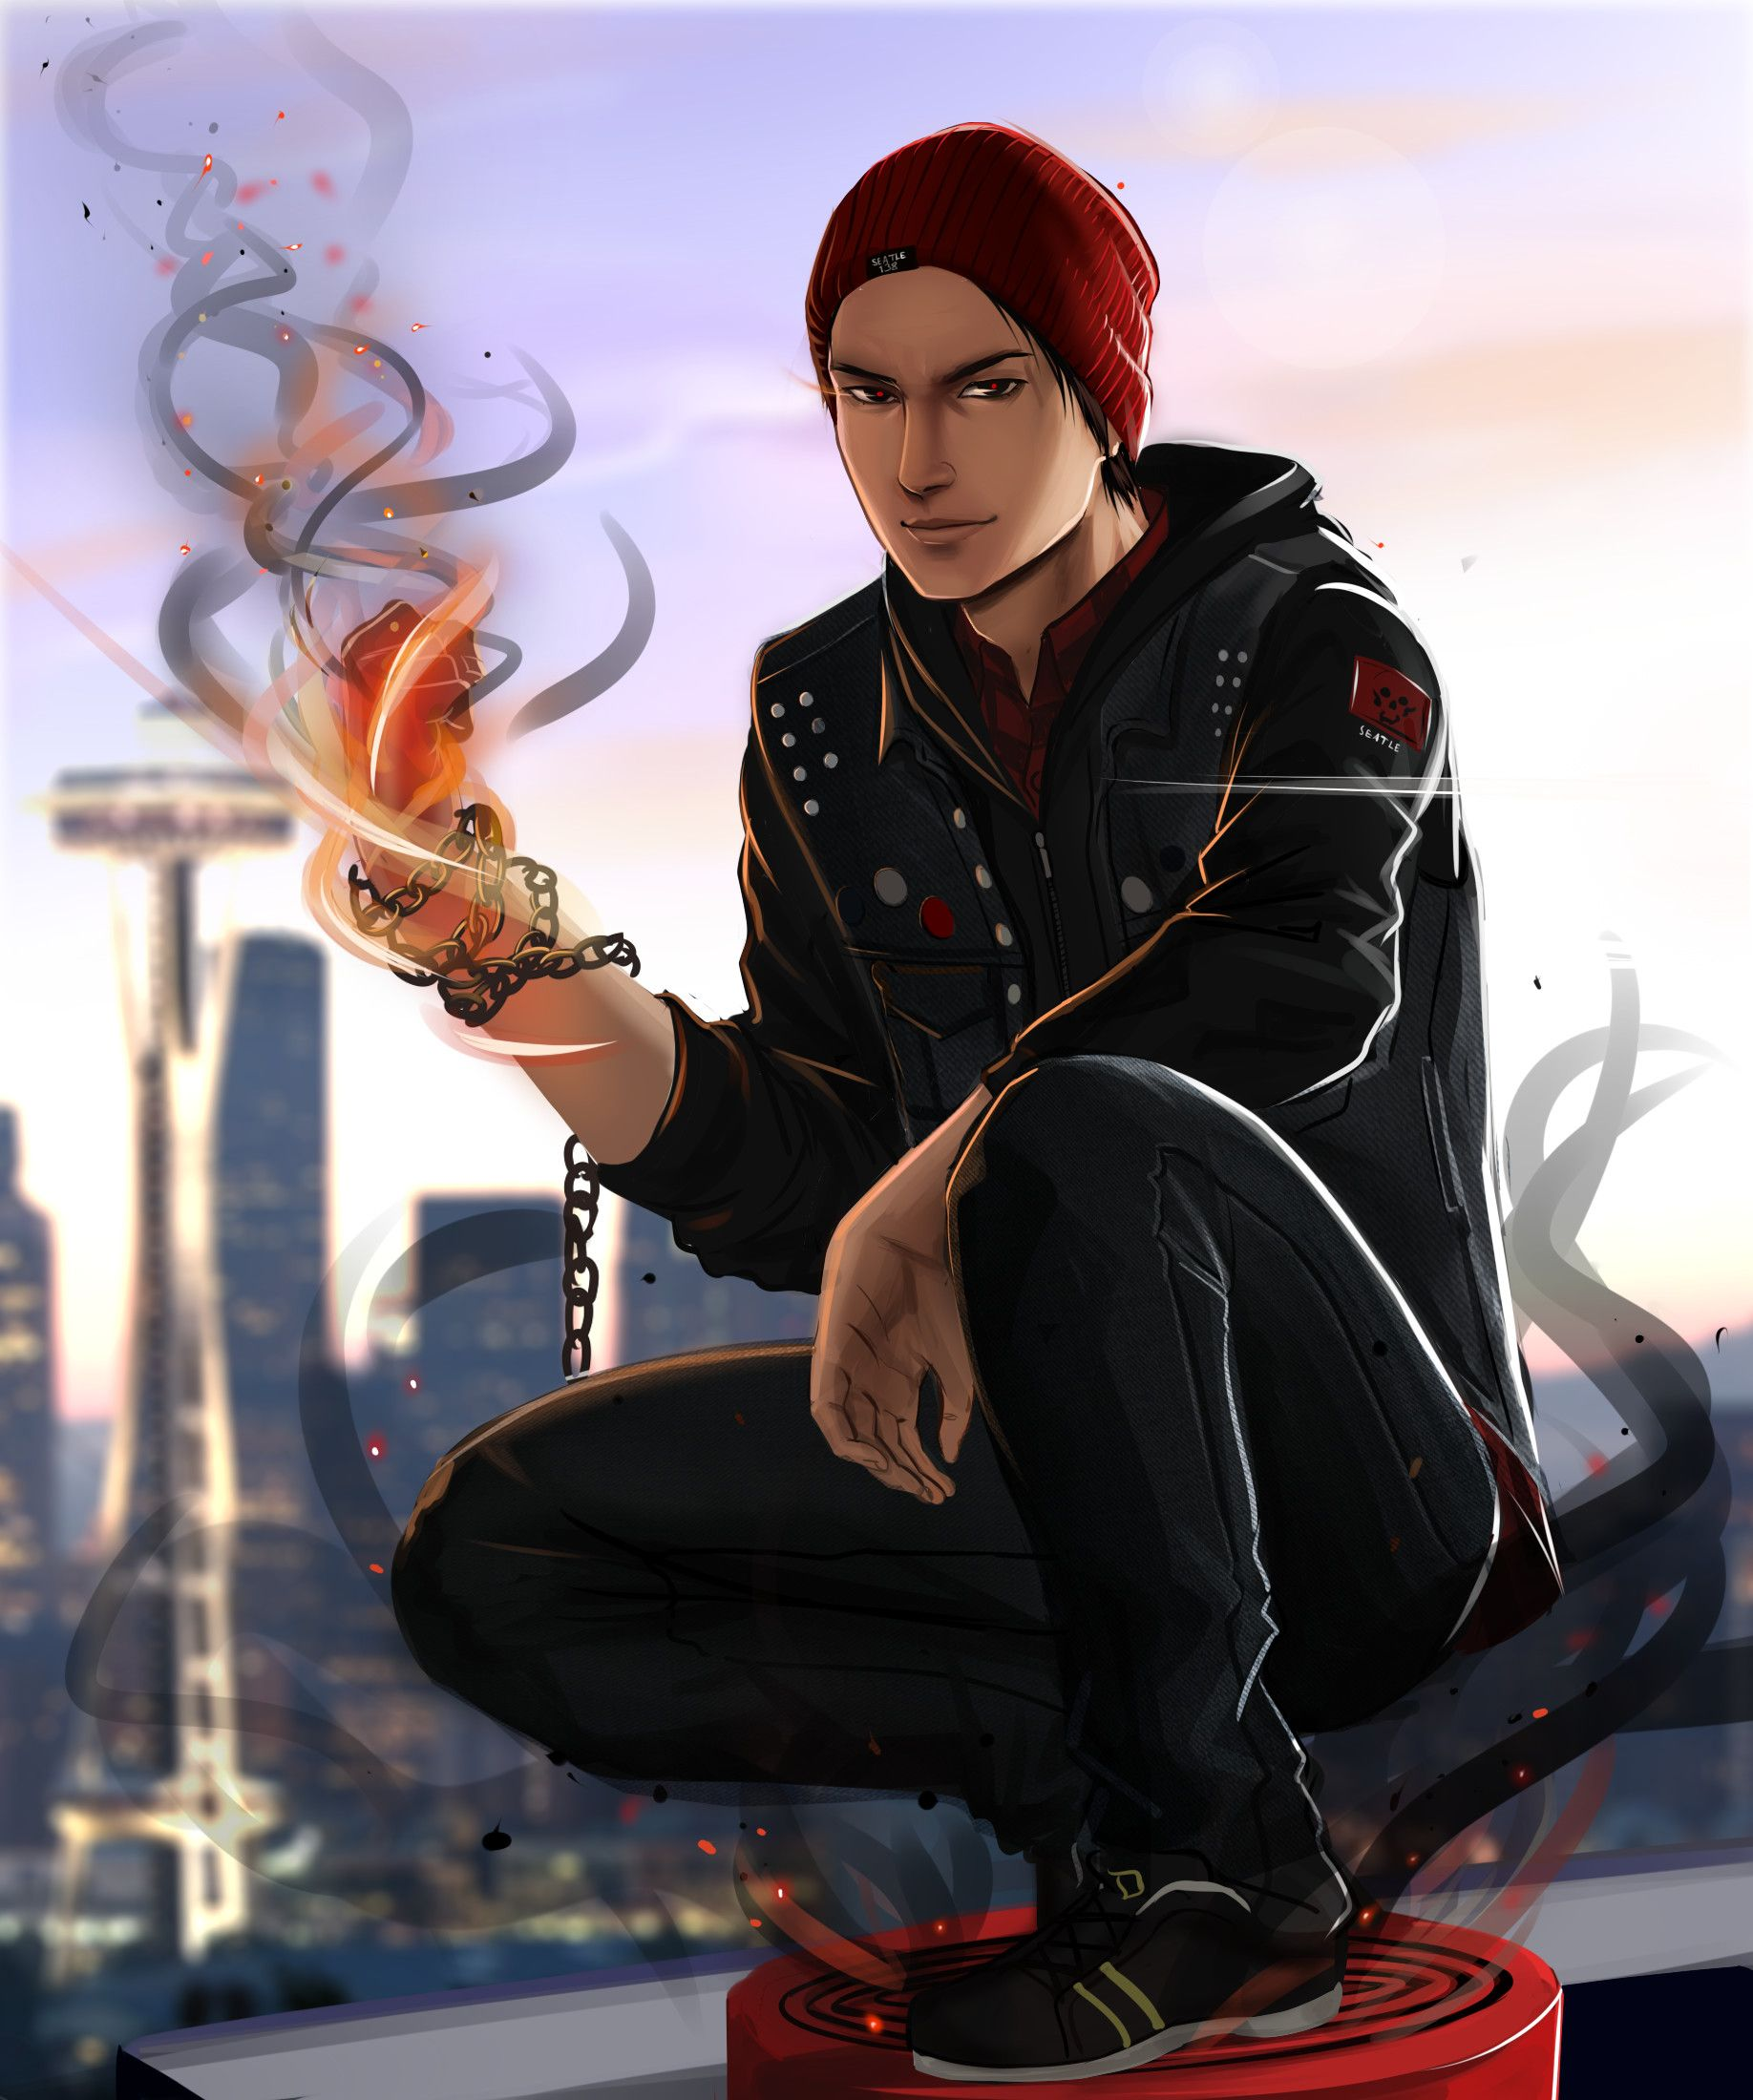 nycolaspedrodelsin.jpg (1836×2200) Infamous second son